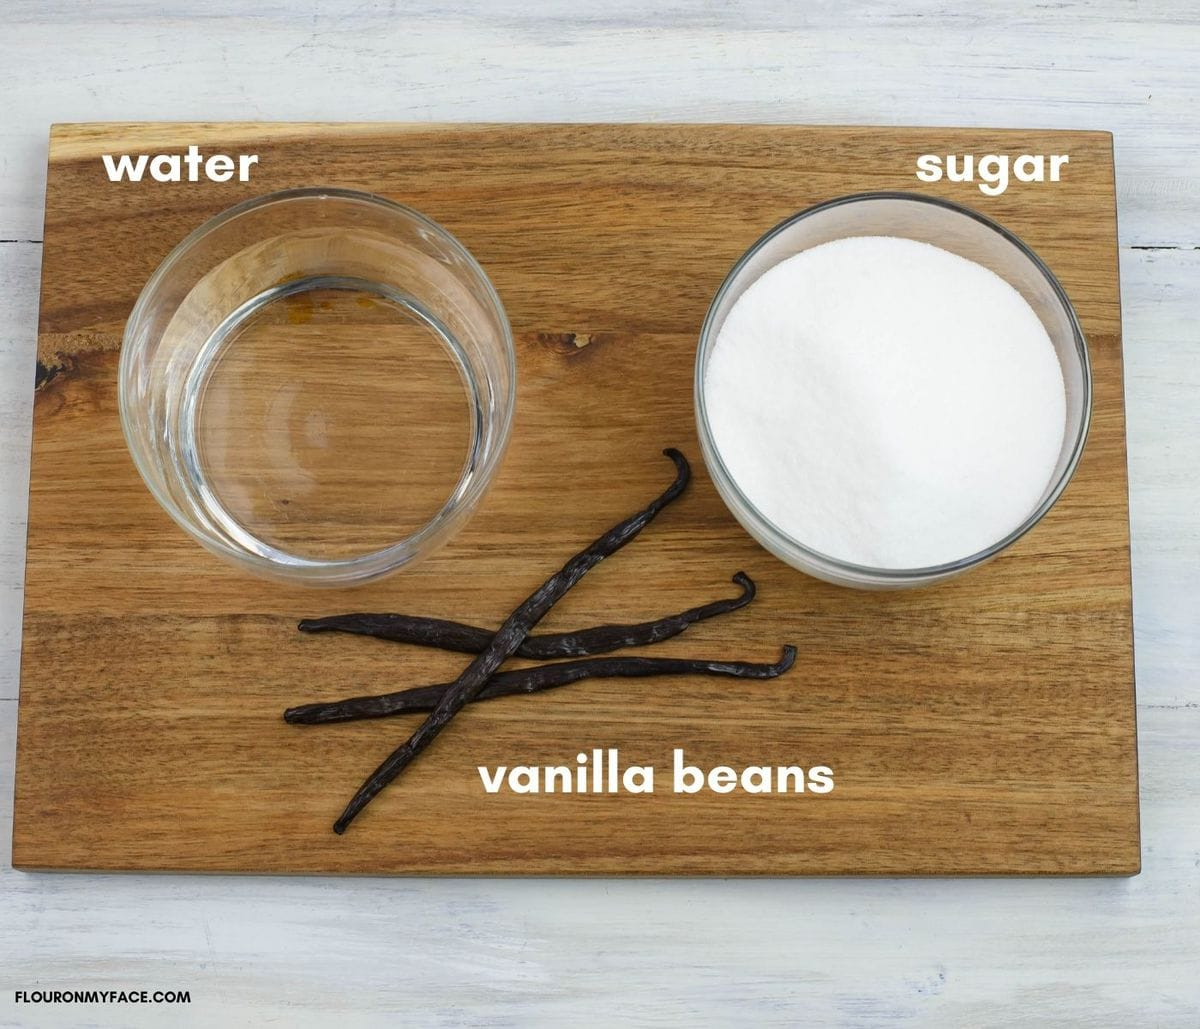 Vanilla syrup ingredients on a wooden cutting board.